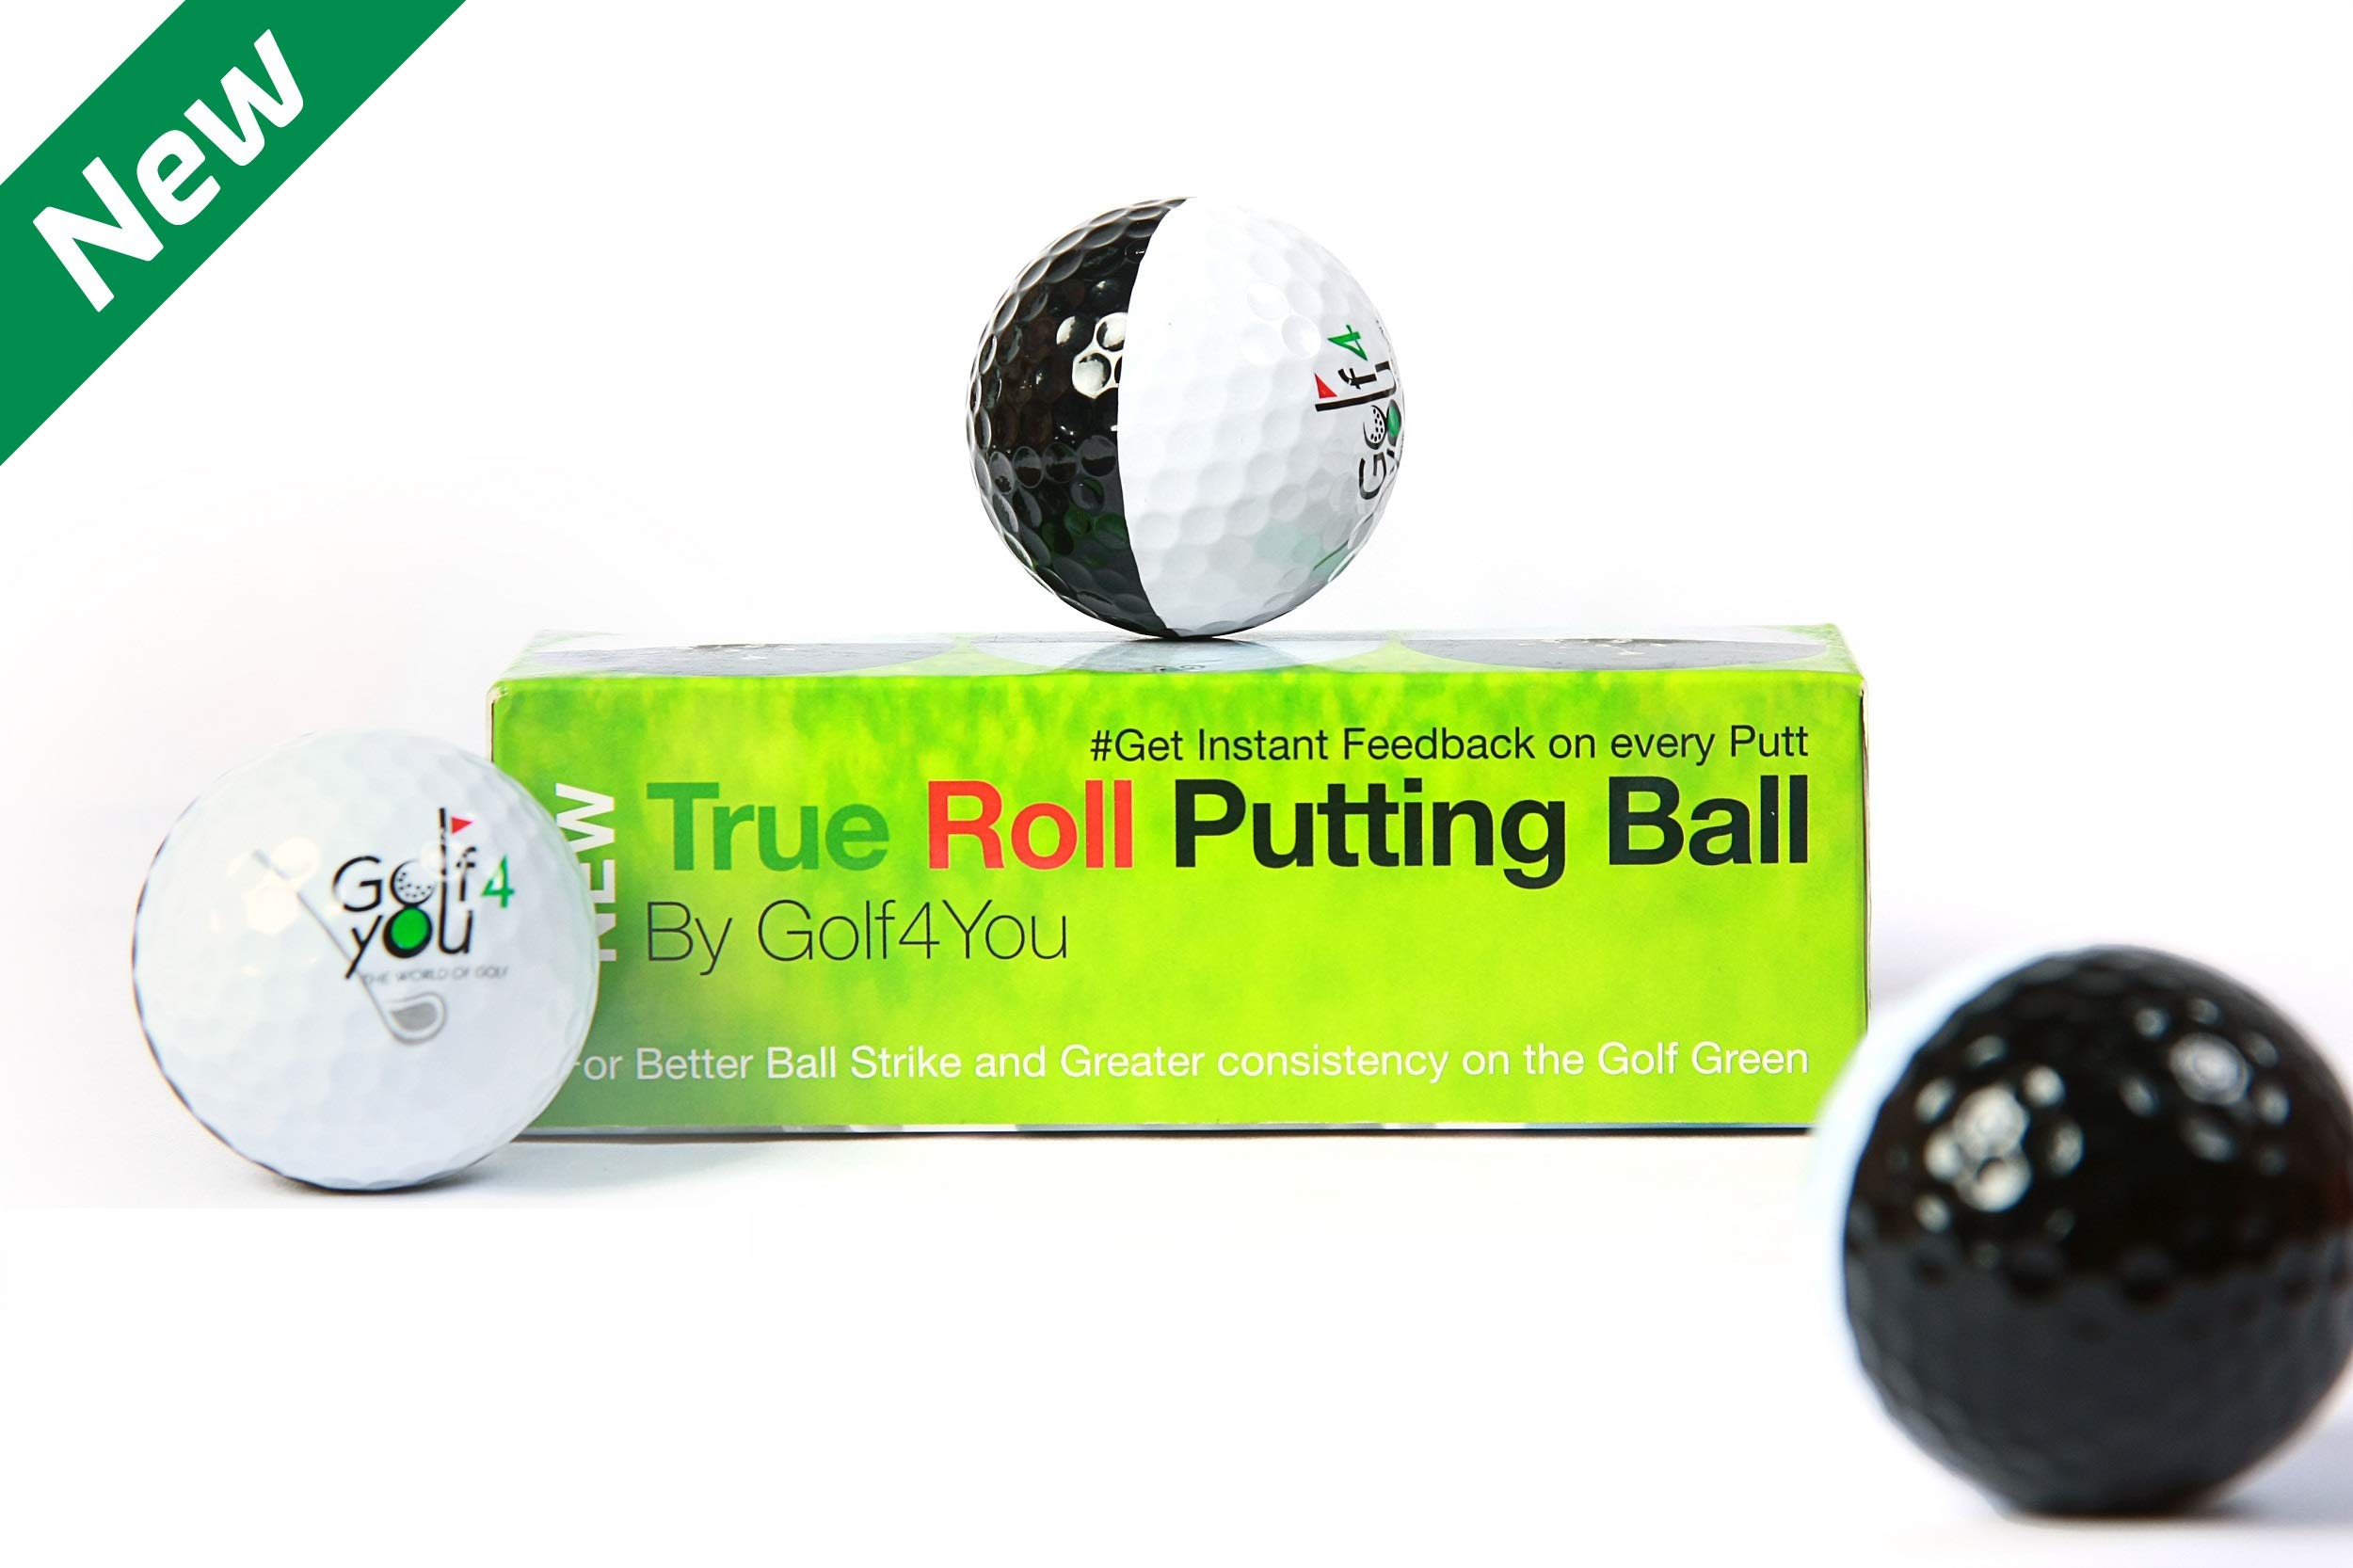 Novelty Golf Practice Putting Balls 3-Pack - True Roll Putting Ball - Putting Alignment Improvement Accessory. ASSESS and Perfect Your Putting Trajectory at a Glance During Your Training Session